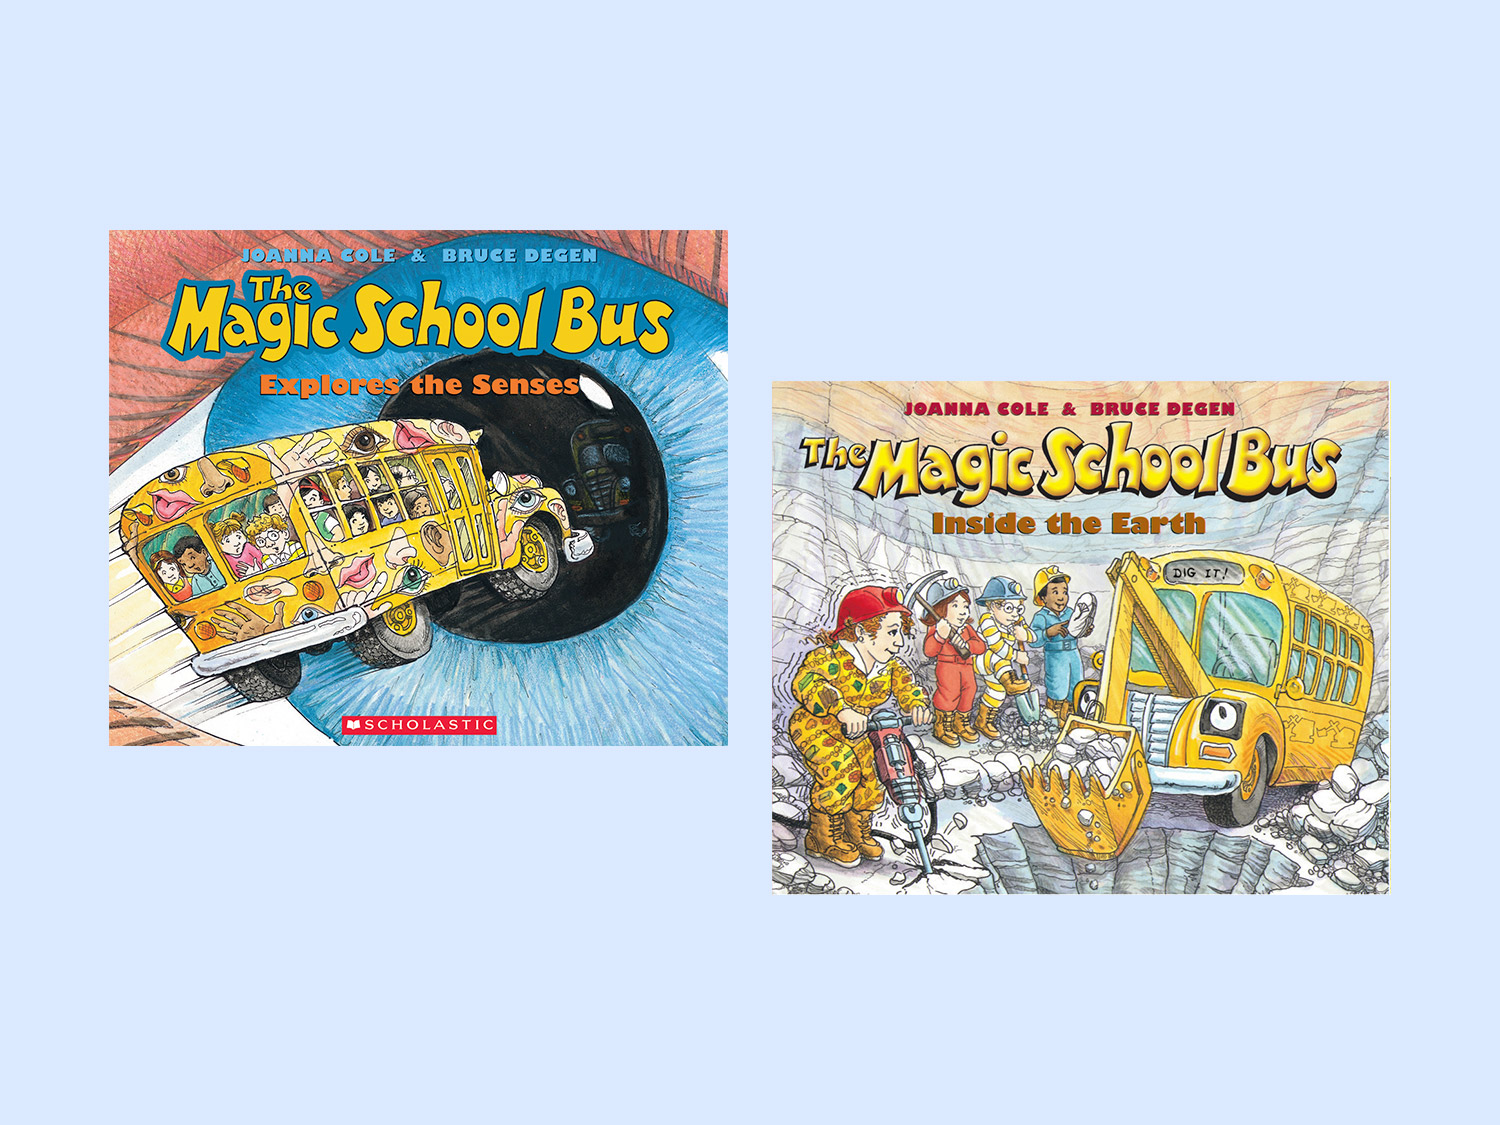 The Magic School Bus Classics Scholastic Parents